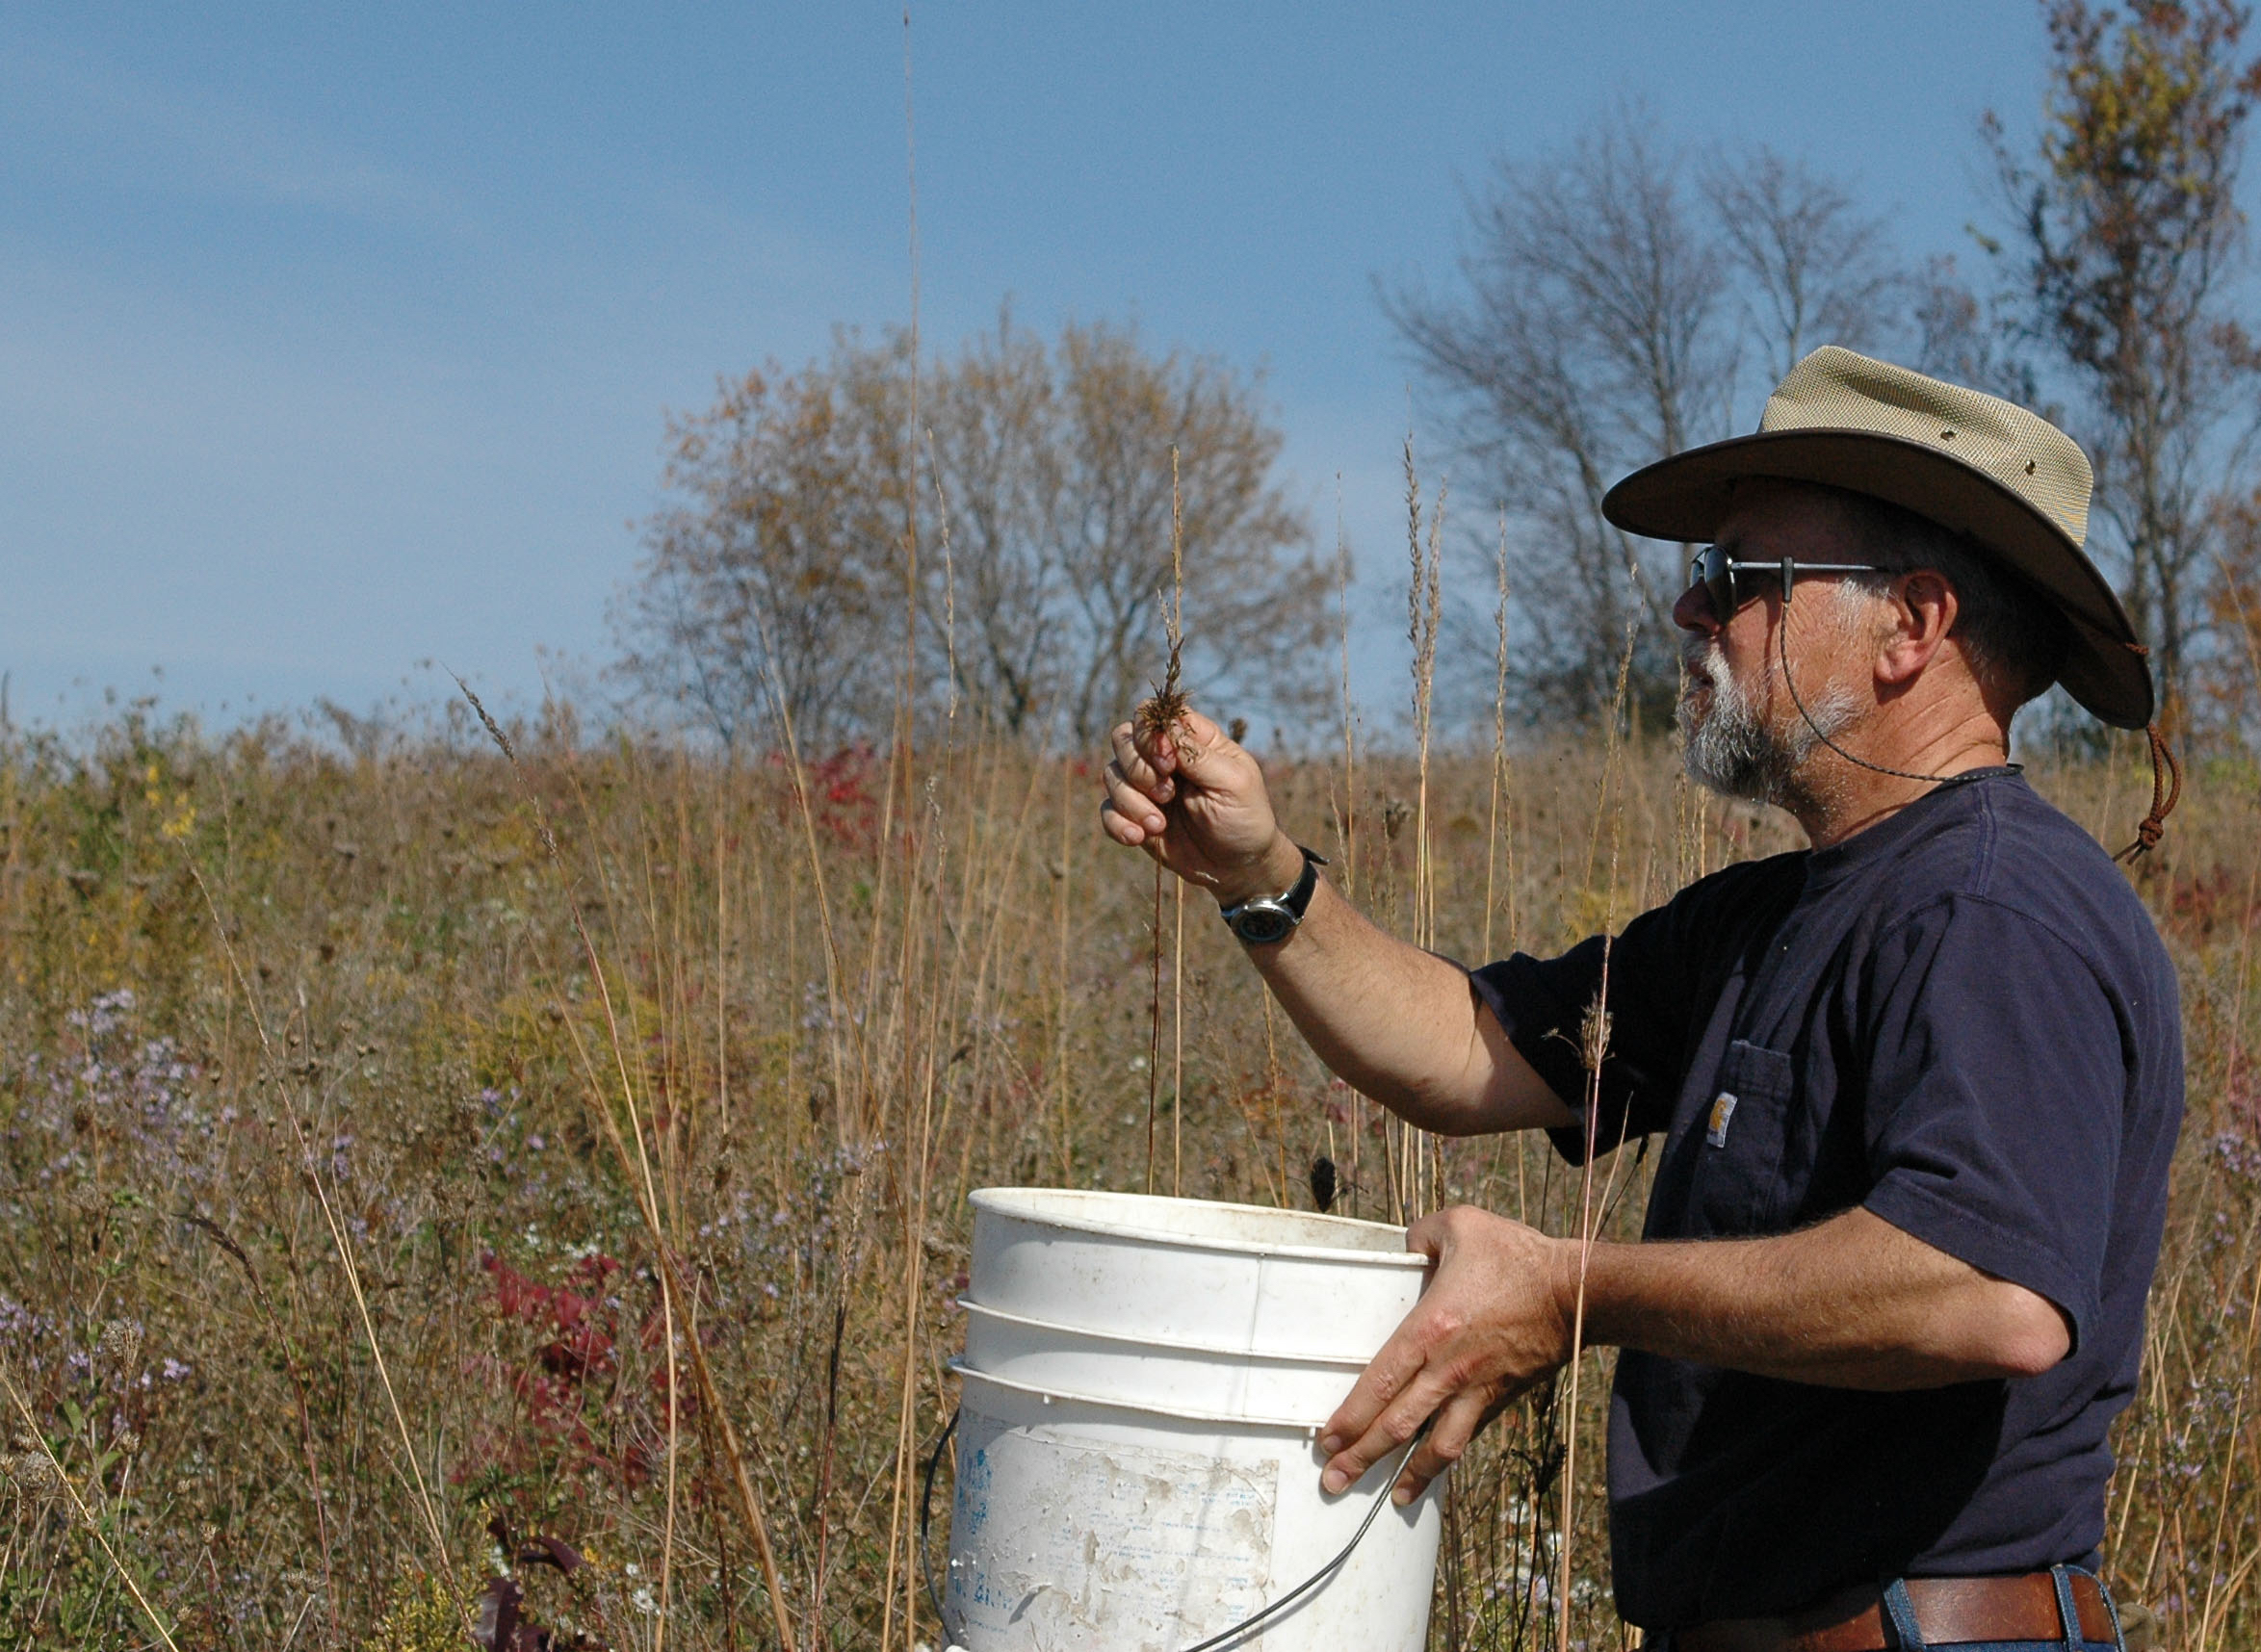 610a6e6dc2bd77 Photo: Steve Carpenter collecting Indian Grass seed in an effort to restore  native prairie on